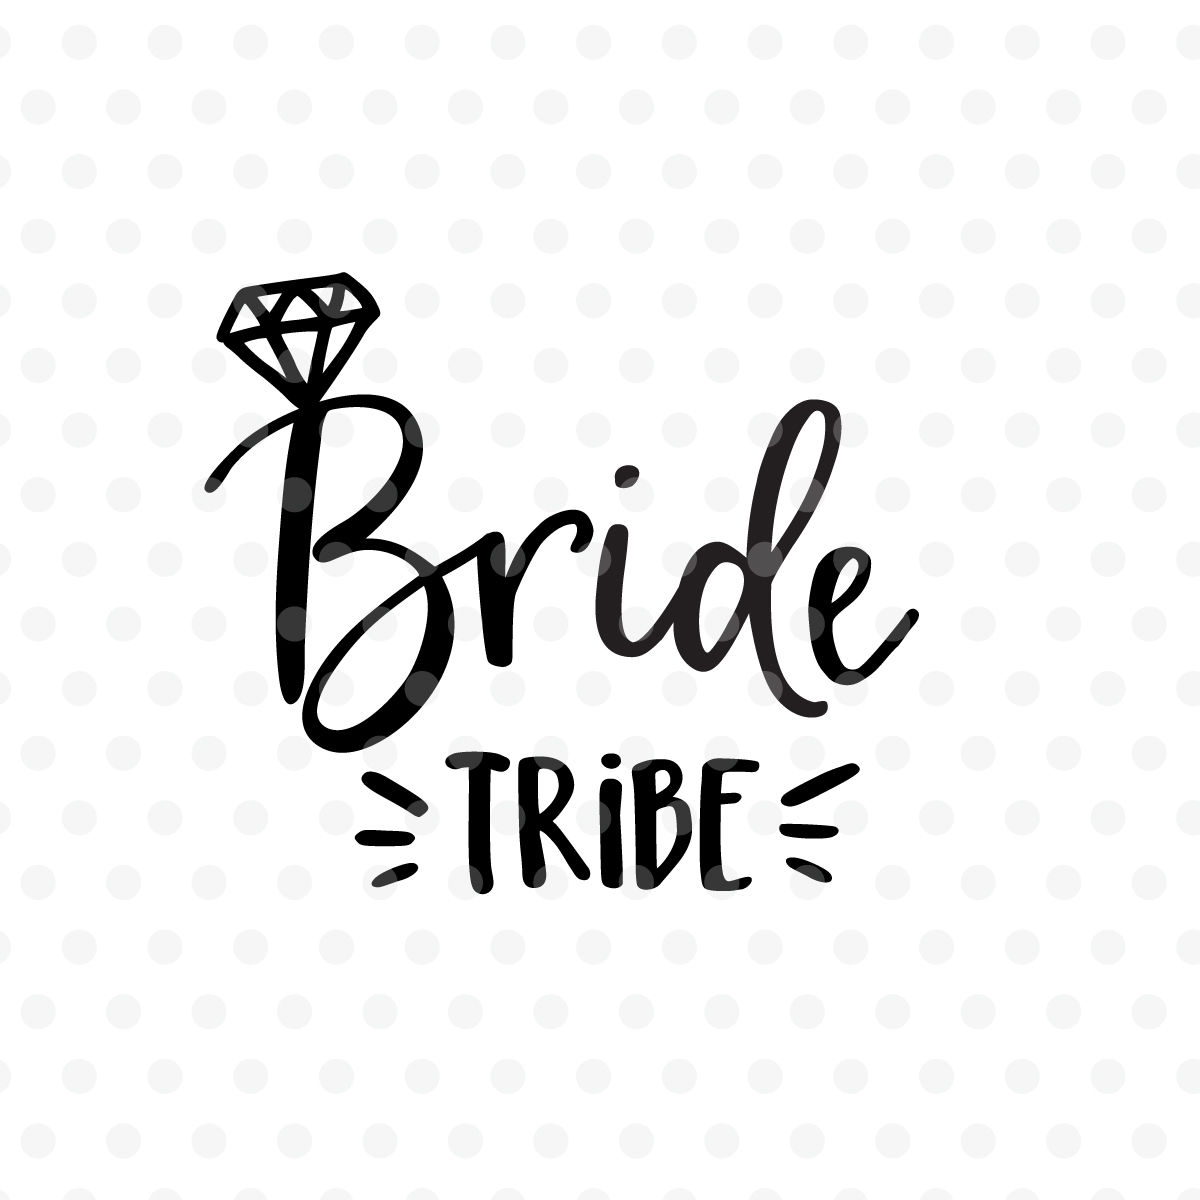 Bride tribe wedding SVG, EPS, PNG, DXF By Tabita's shop.